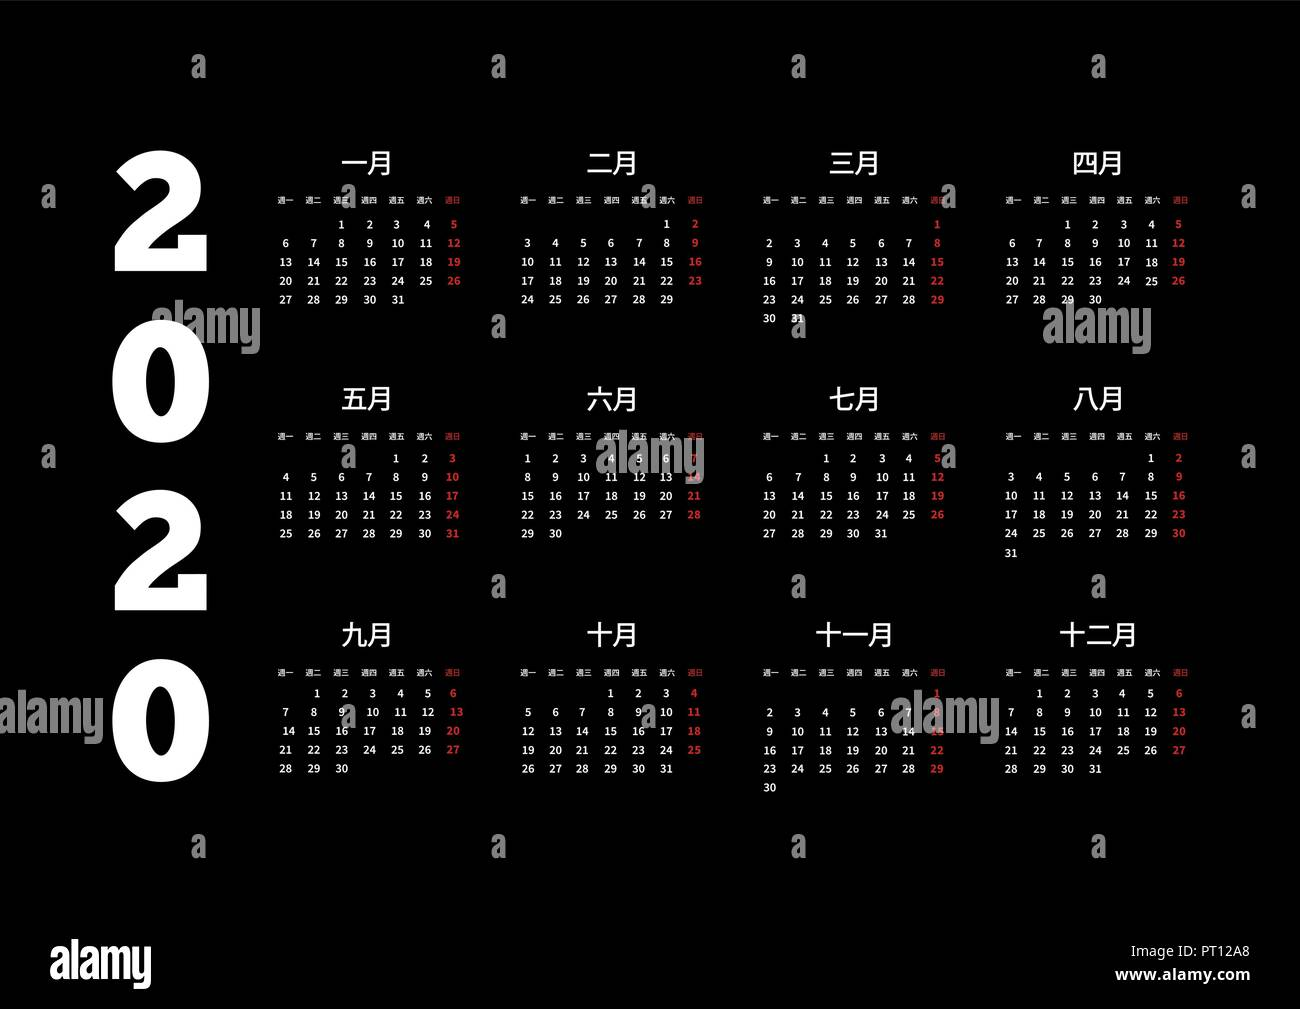 2020 Calendario Chino.Ano 2020 Calendario Simple En Idioma Chino Sobre Negro